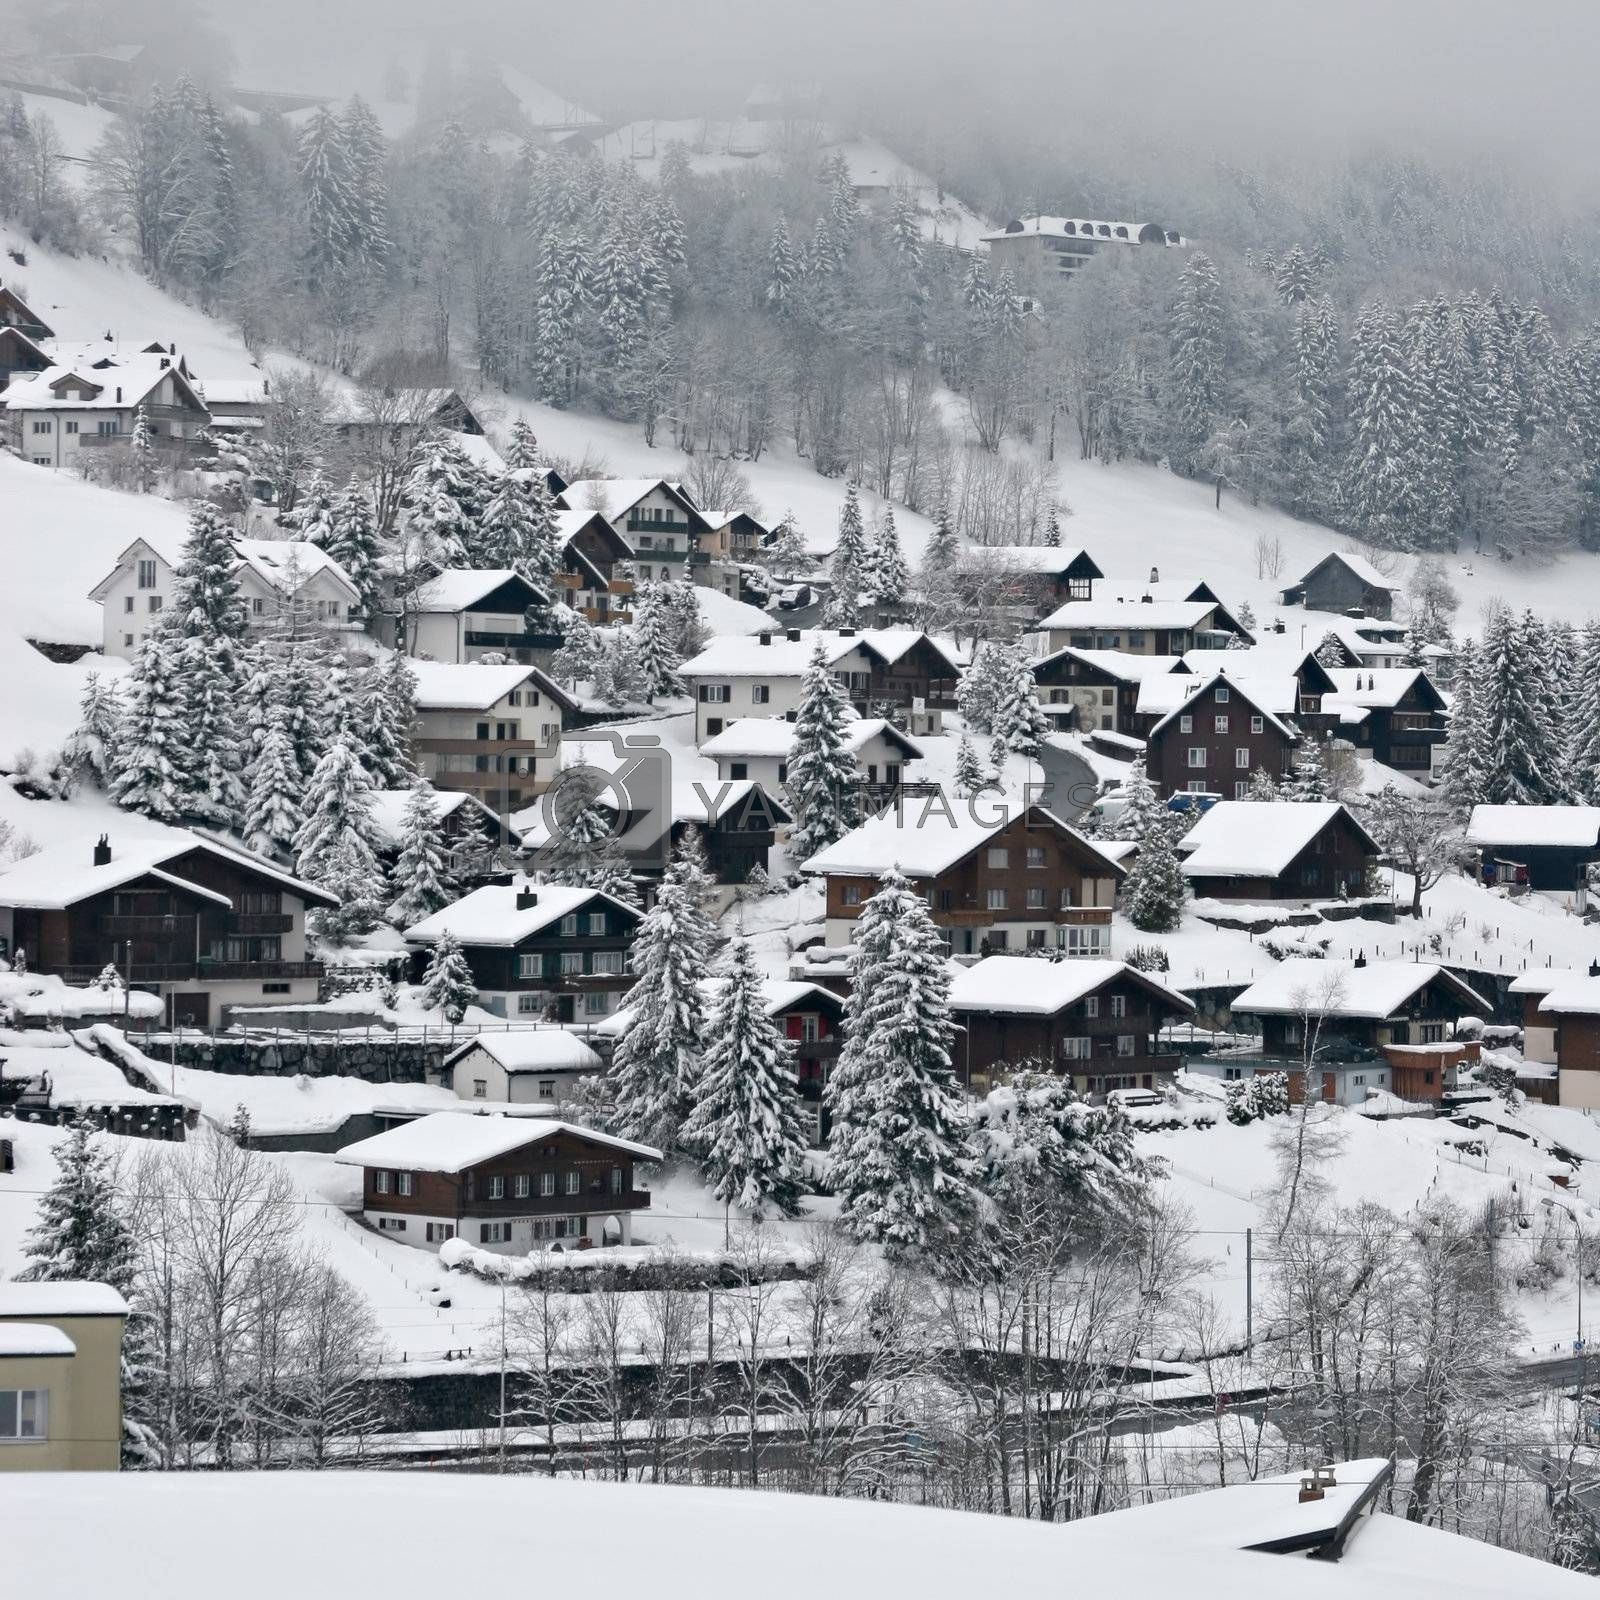 View over a Swiss Village in the Alps, covered in snow during winter.